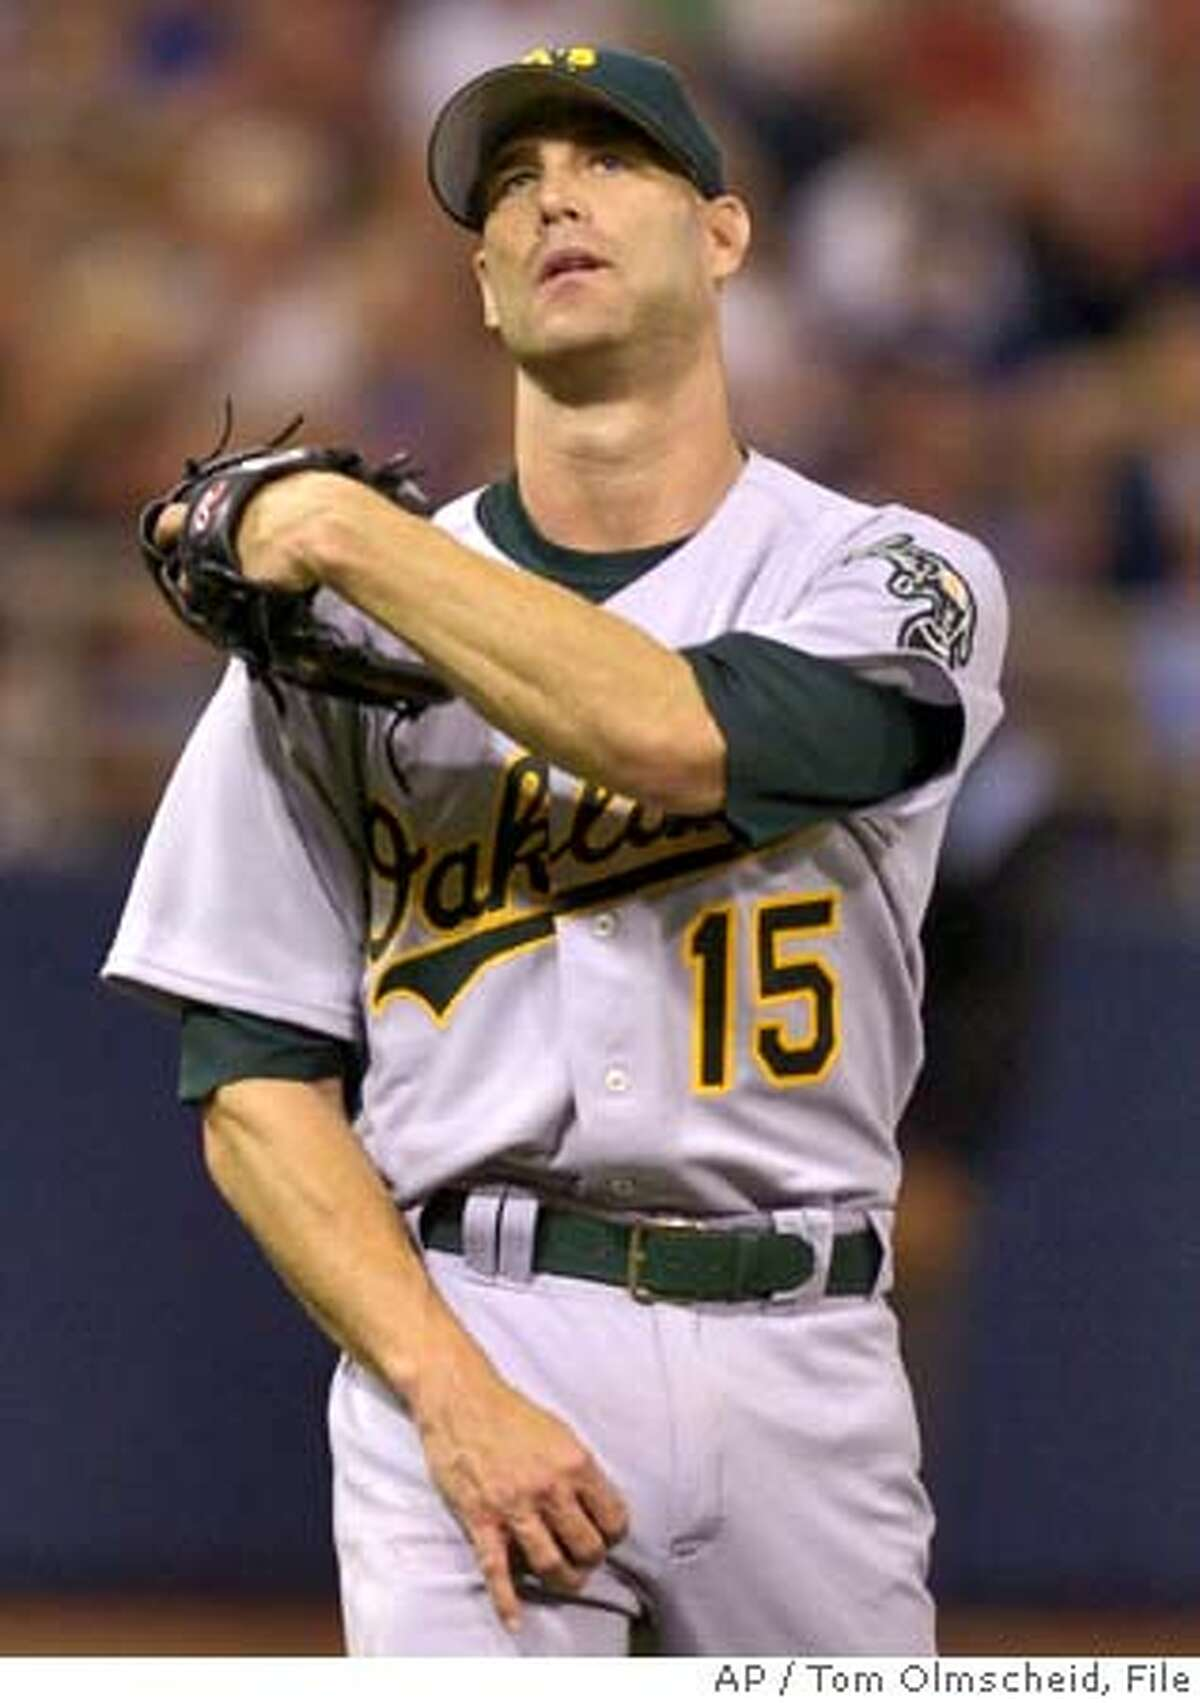 Oakland Athletics' starting pitcher Tim Hudson reacts after giving up a single to Minnesota Twins' Jose Offerman that allowed the third run of the sixth inning to score, Saturday, Aug. 7, 2004 in Minneapolis. This was Hudson's first start since coming off the disabled list. (AP Photo/Tom Olmscheid) Ran on: 08-08-2004 Tim Hudson, in his first start for the As since coming off the disabled list, allowed four runs, three of them in the sixth inning. Ran on: 08-08-2004 Tim Hudson, in his first start for the As since coming off the disabled list, allowed four runs, three of them in the sixth inning. Sports#Sports#Chronicle#12/3/2004#ALL#5star##0422240964